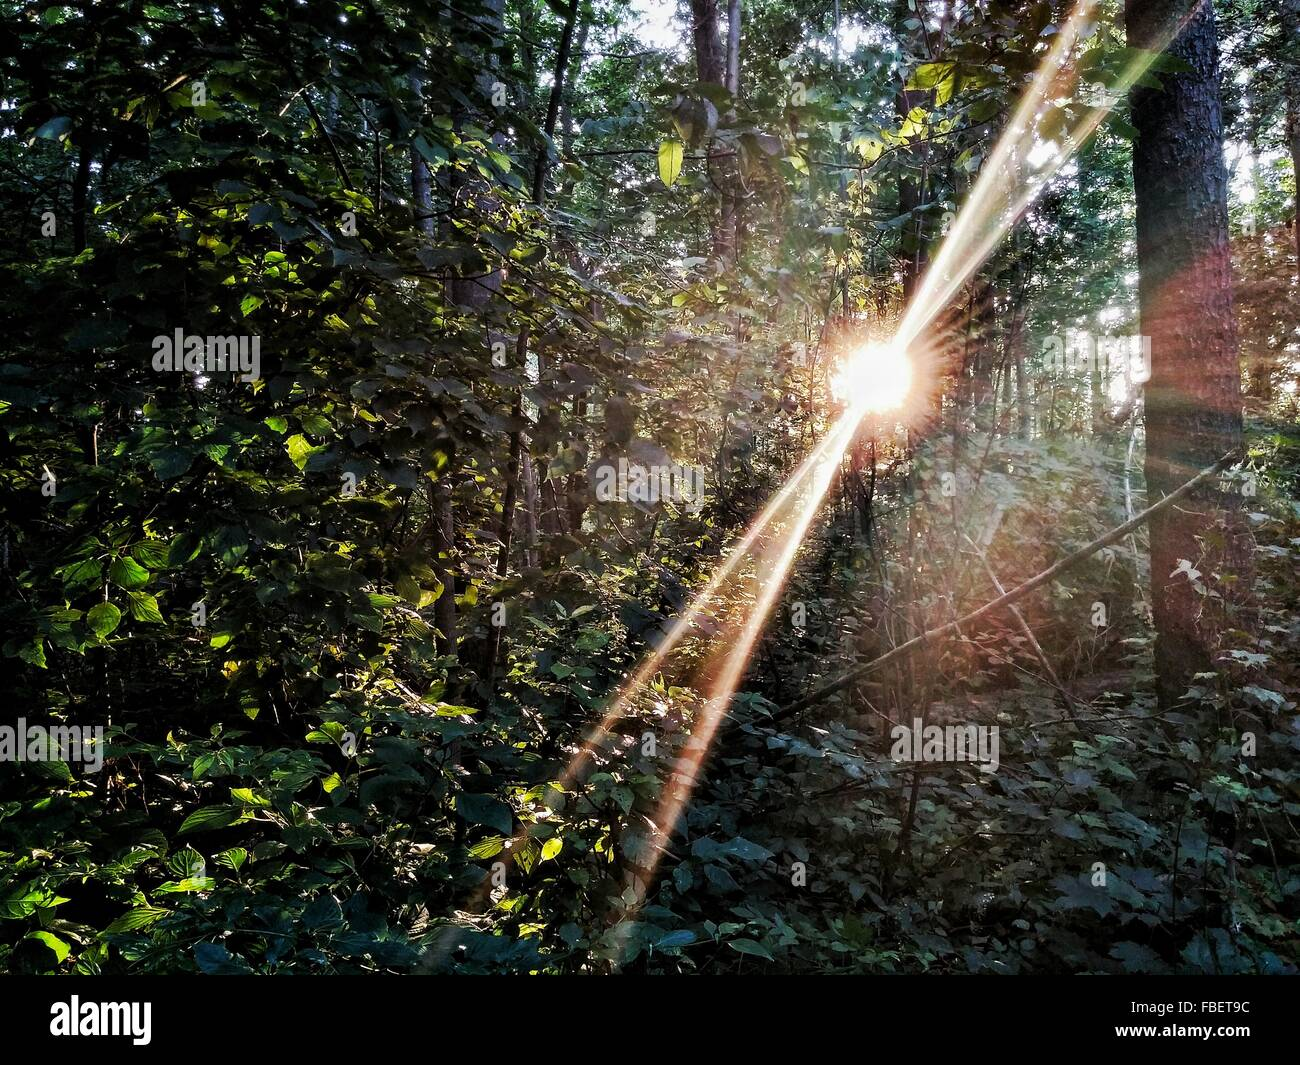 Low Angle View Of Trees Growing In Forest - Stock Image